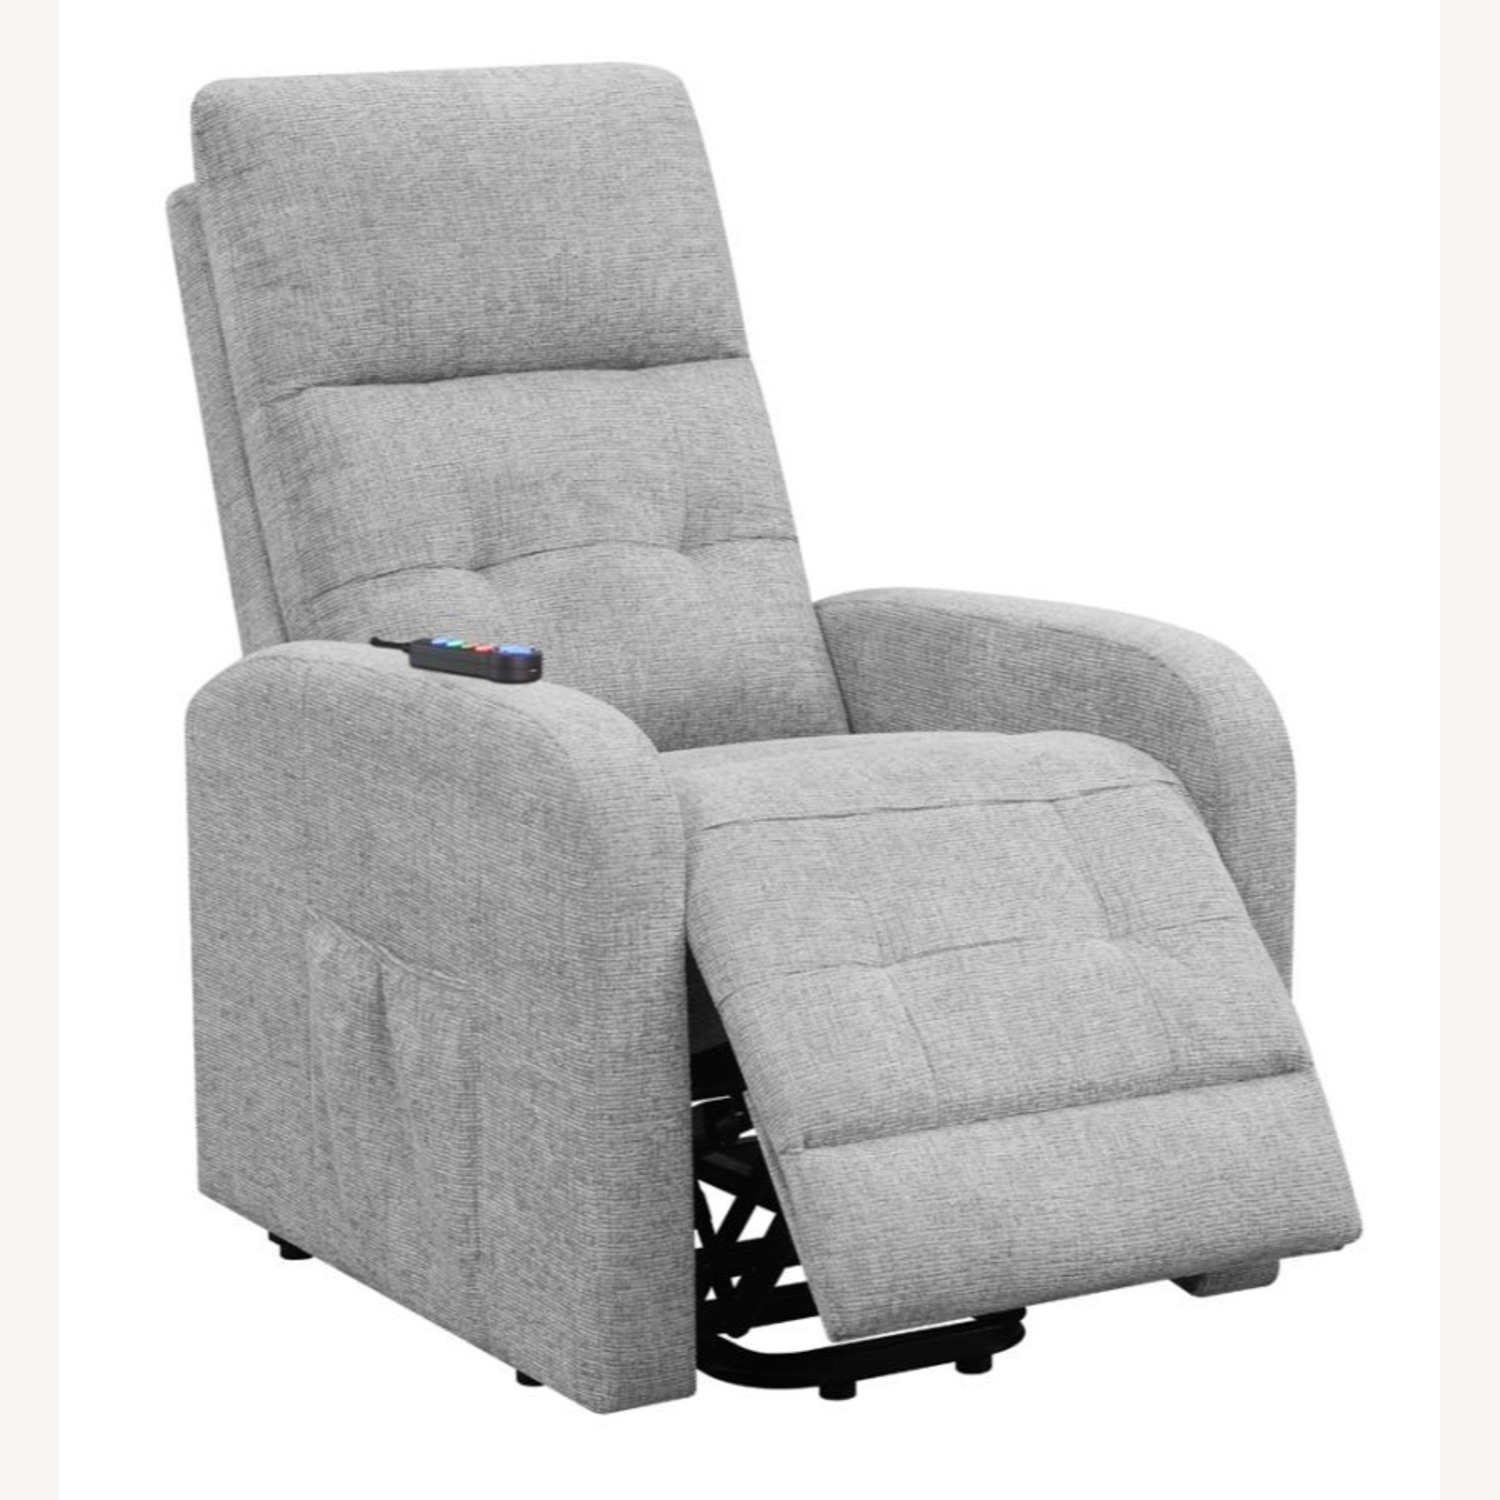 Power Lift Massage Chair In Grey Fabric - image-1